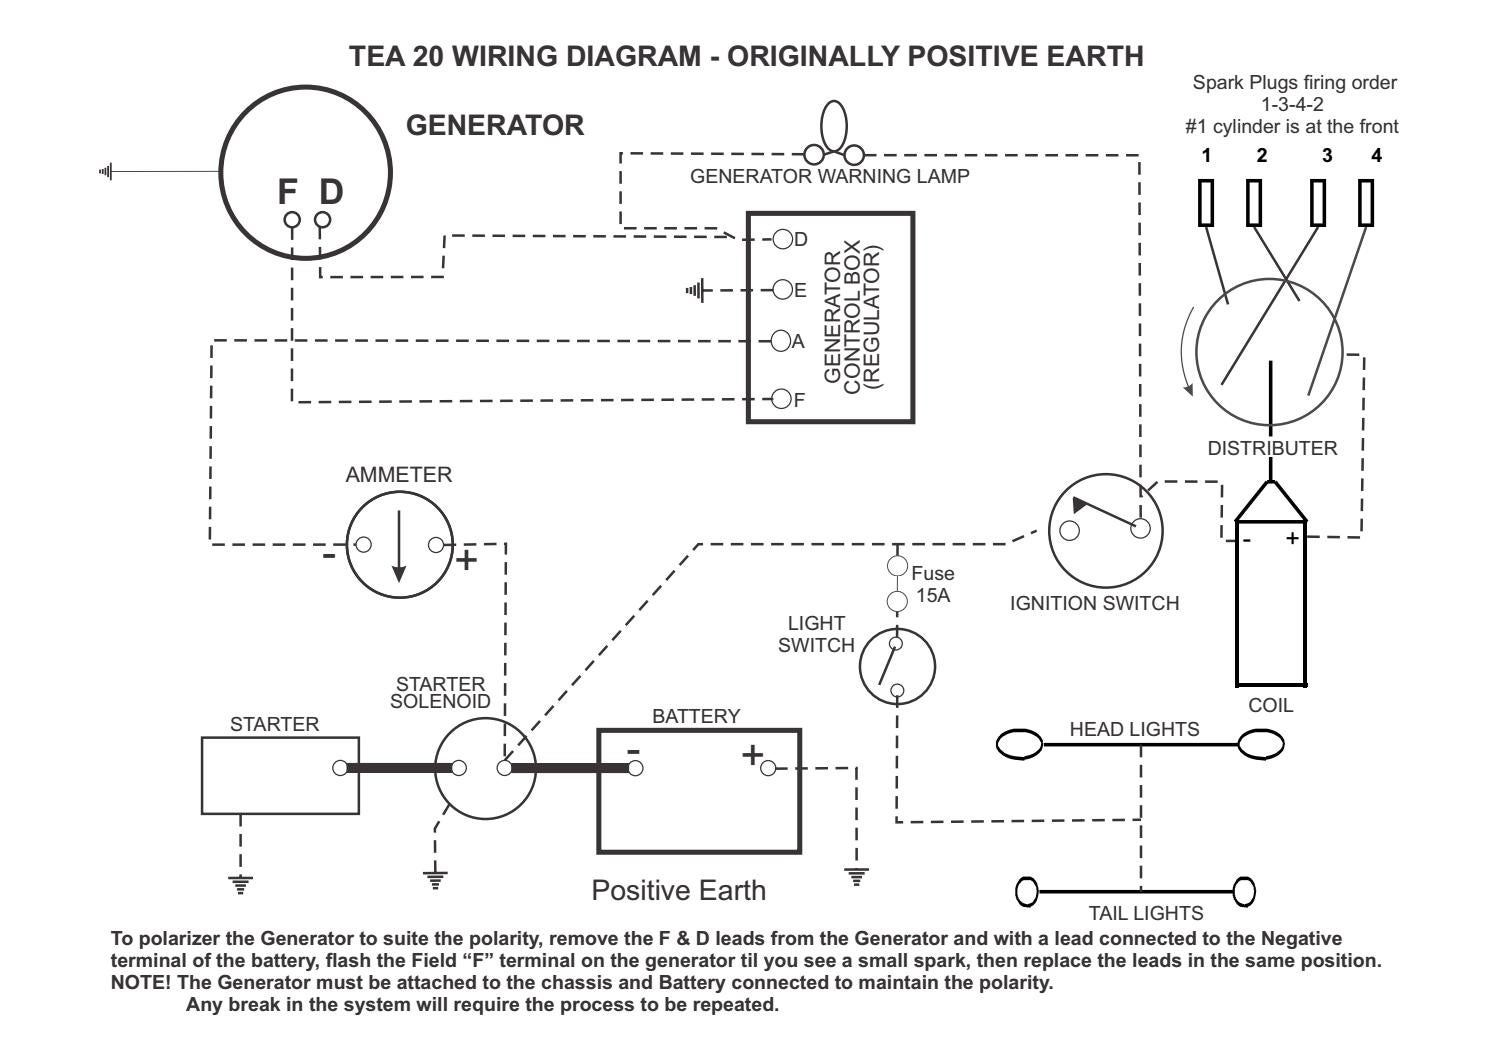 6 Volt Charging System Wiring Diagram Te20 Generator And Alternator Wiring Diagrams By Heads